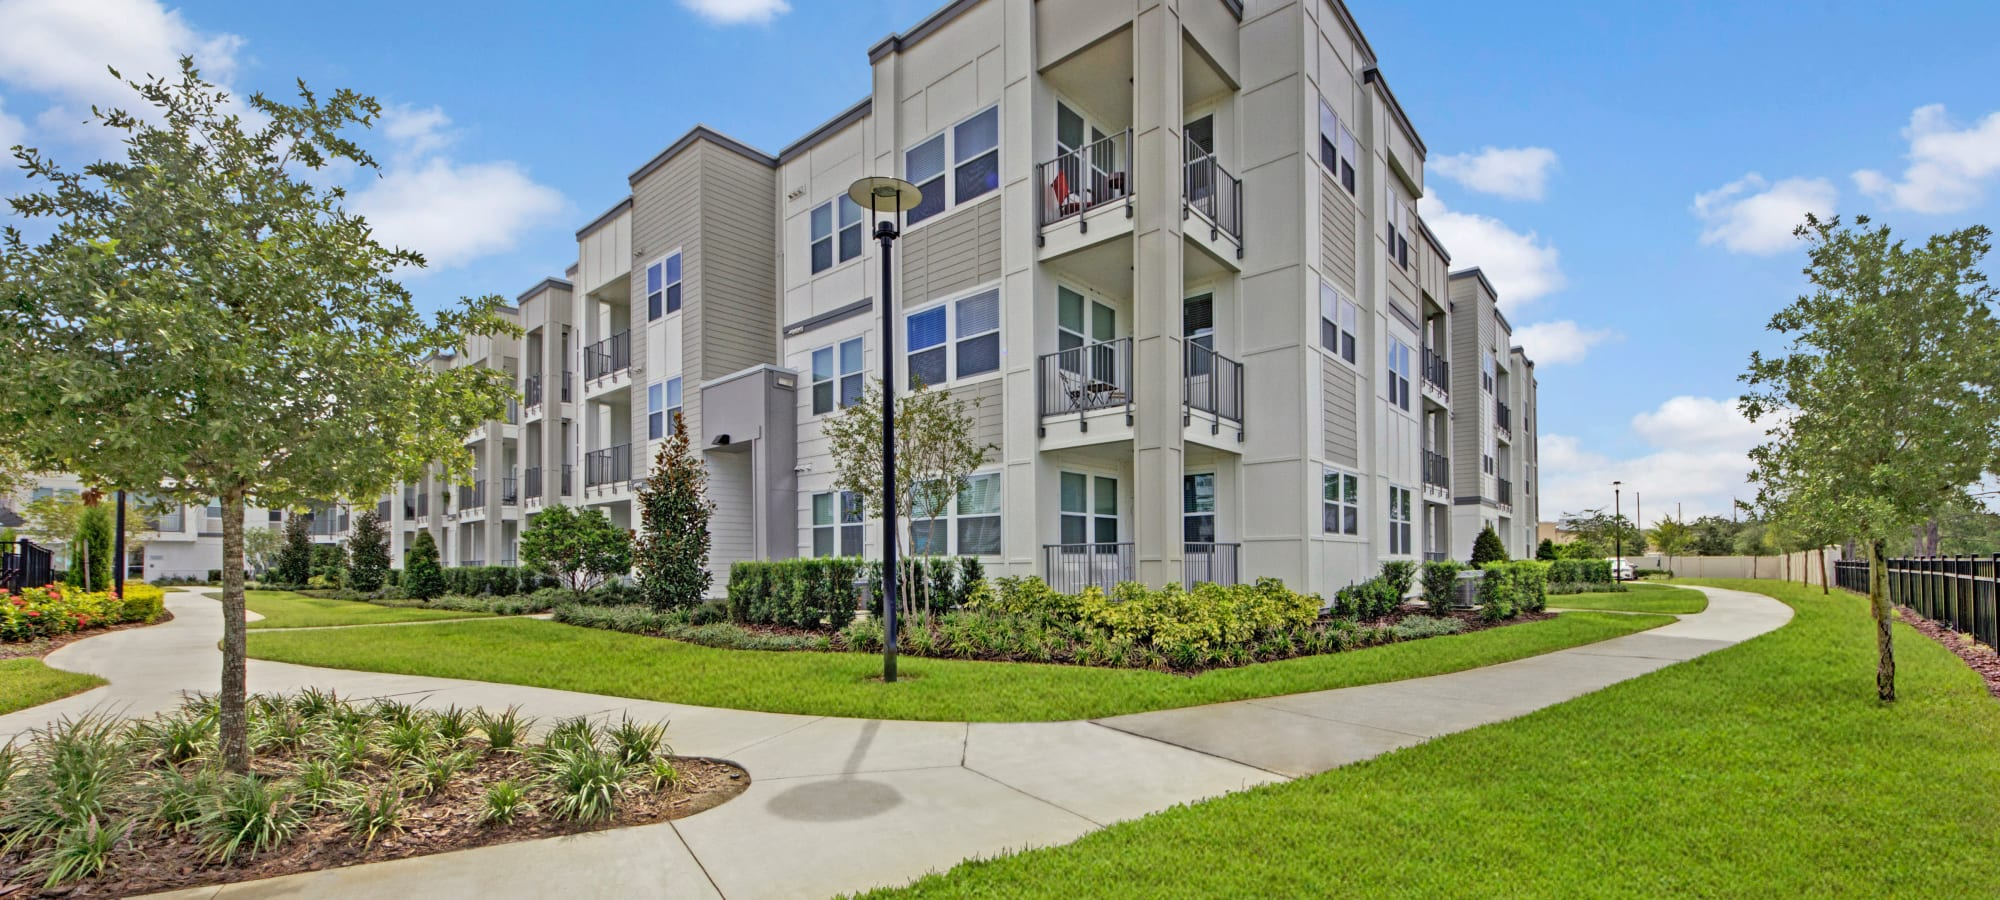 Apartments in Orlando, Florida at Linden on the GreeneWay